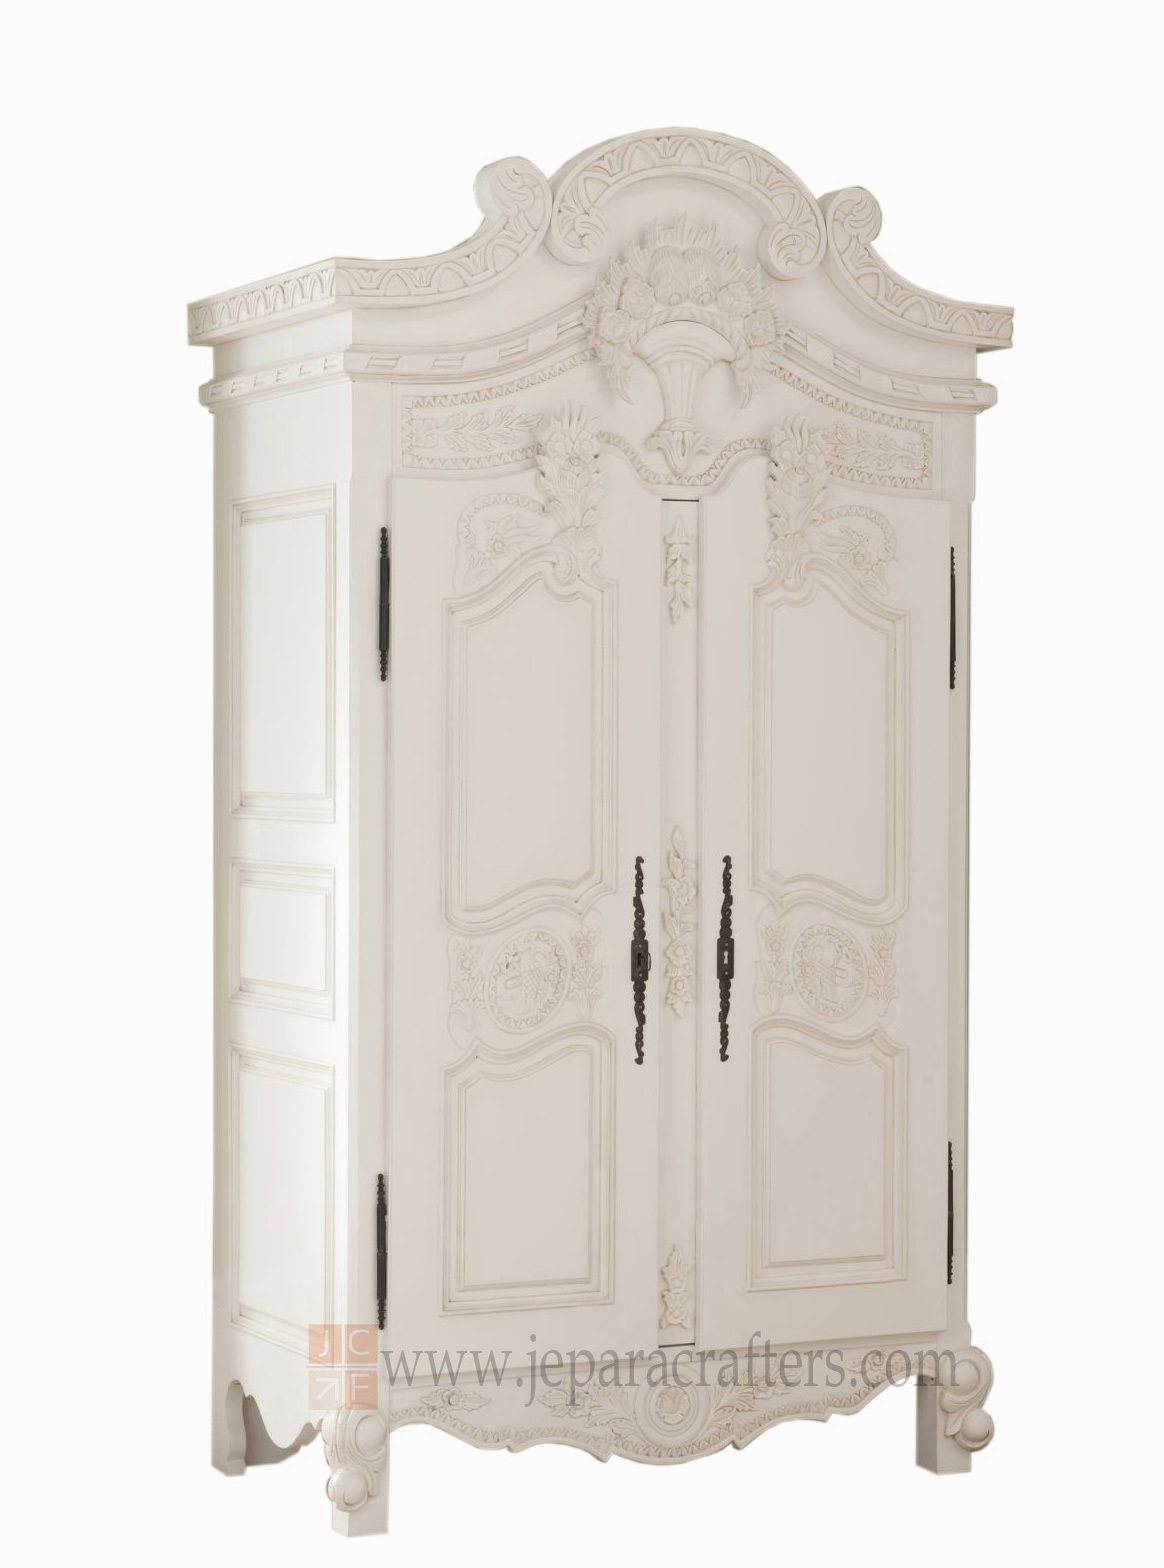 Painted Armoire Furniture | Armoire Furniture | Wood Armoire Furniture